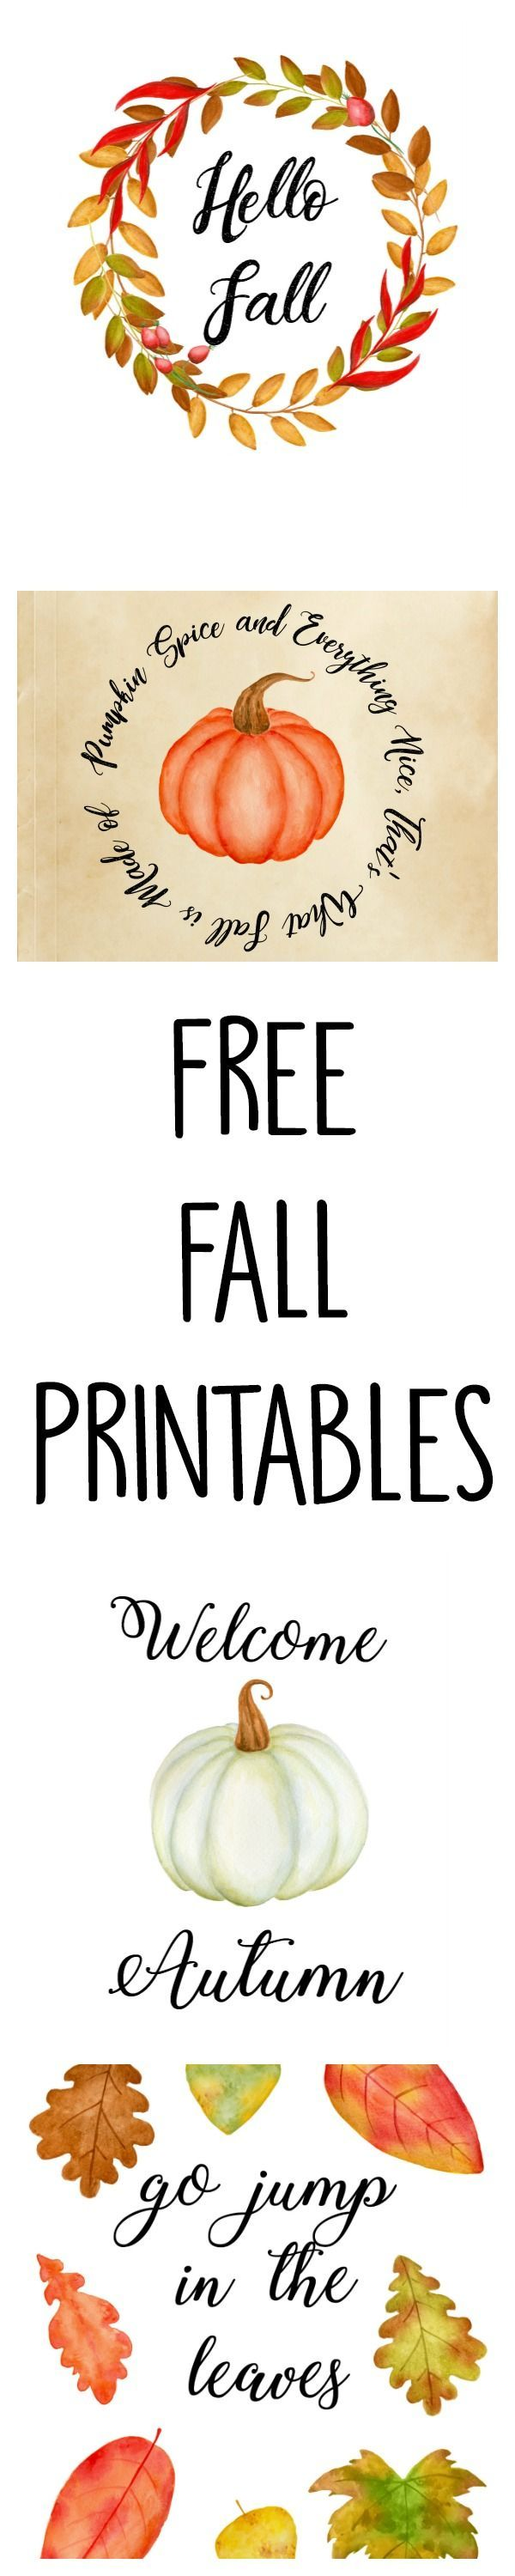 5 Free Fall Printables. Download them now!  #fall #autumn #printables #fallprintables #falldownloads #fallart #autumnart #freebies